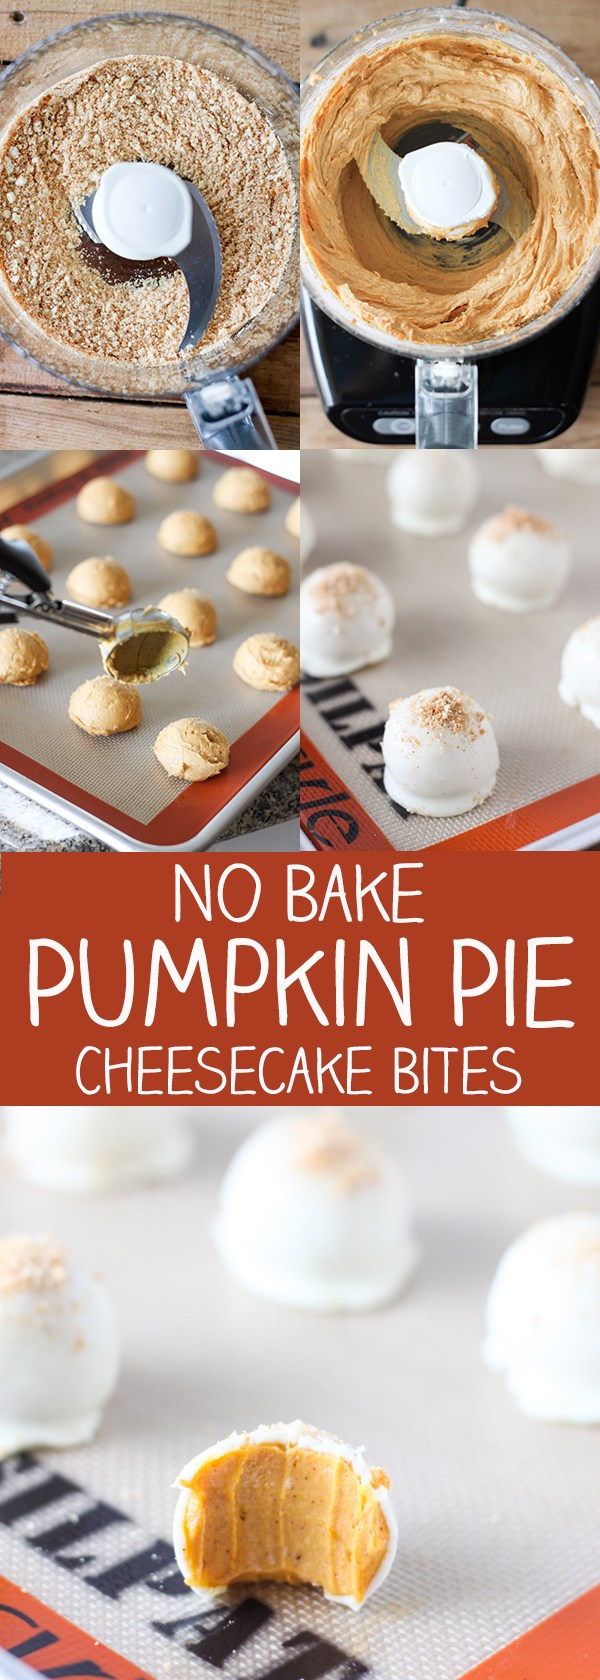 No Bake Pumpkin Pie Cheesecake Bites Easy To Make And Eat